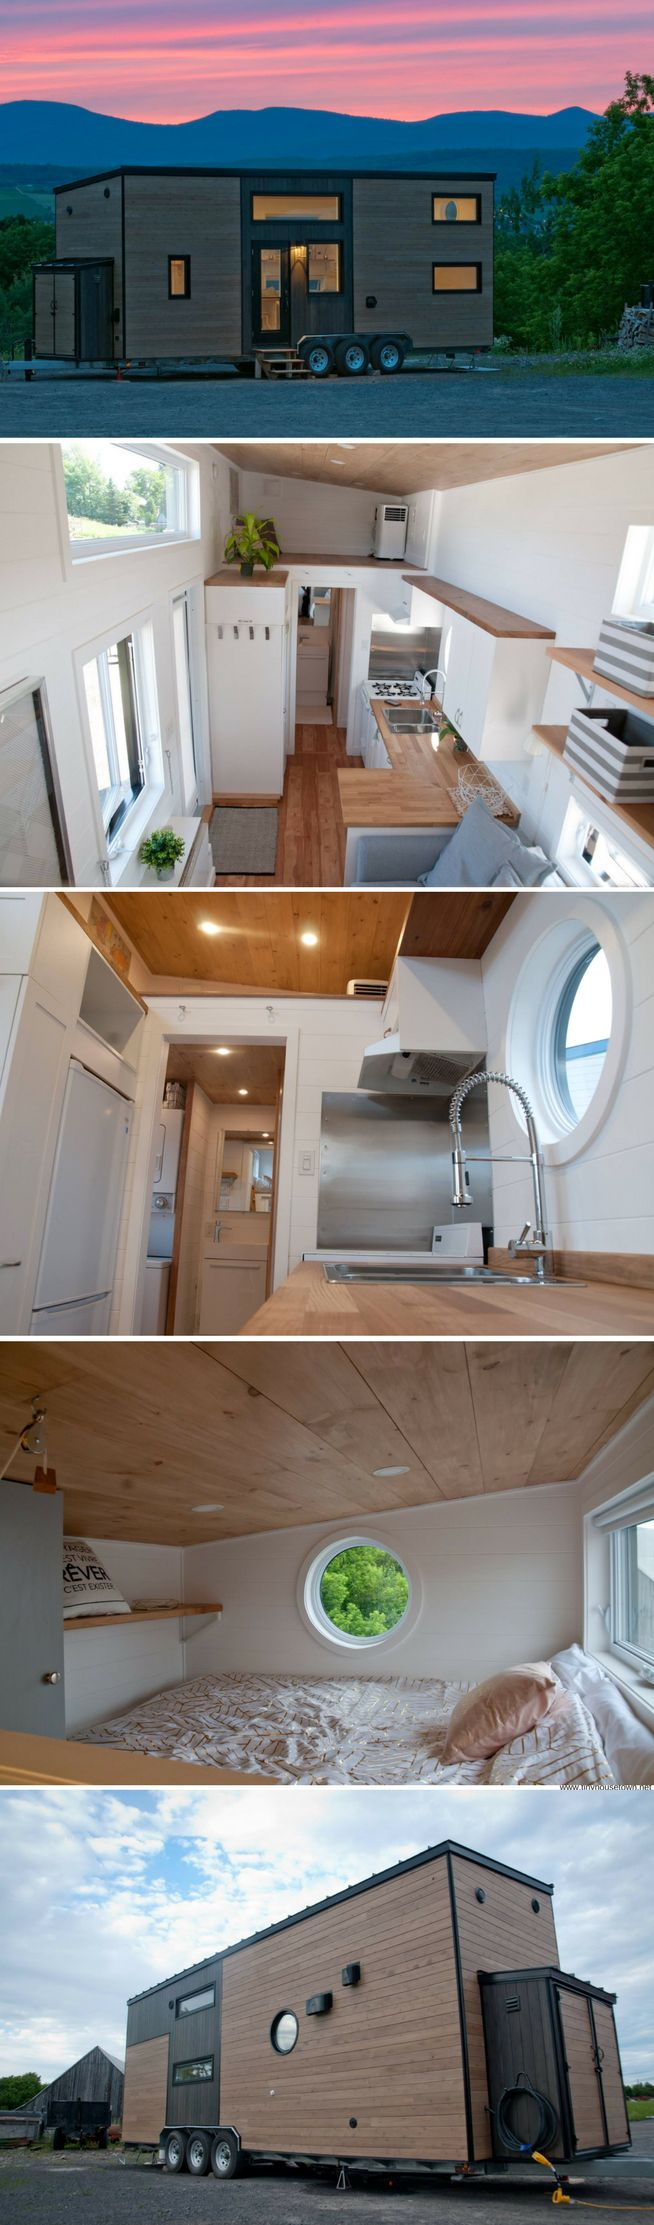 The Acacia tiny house from Mimimaliste